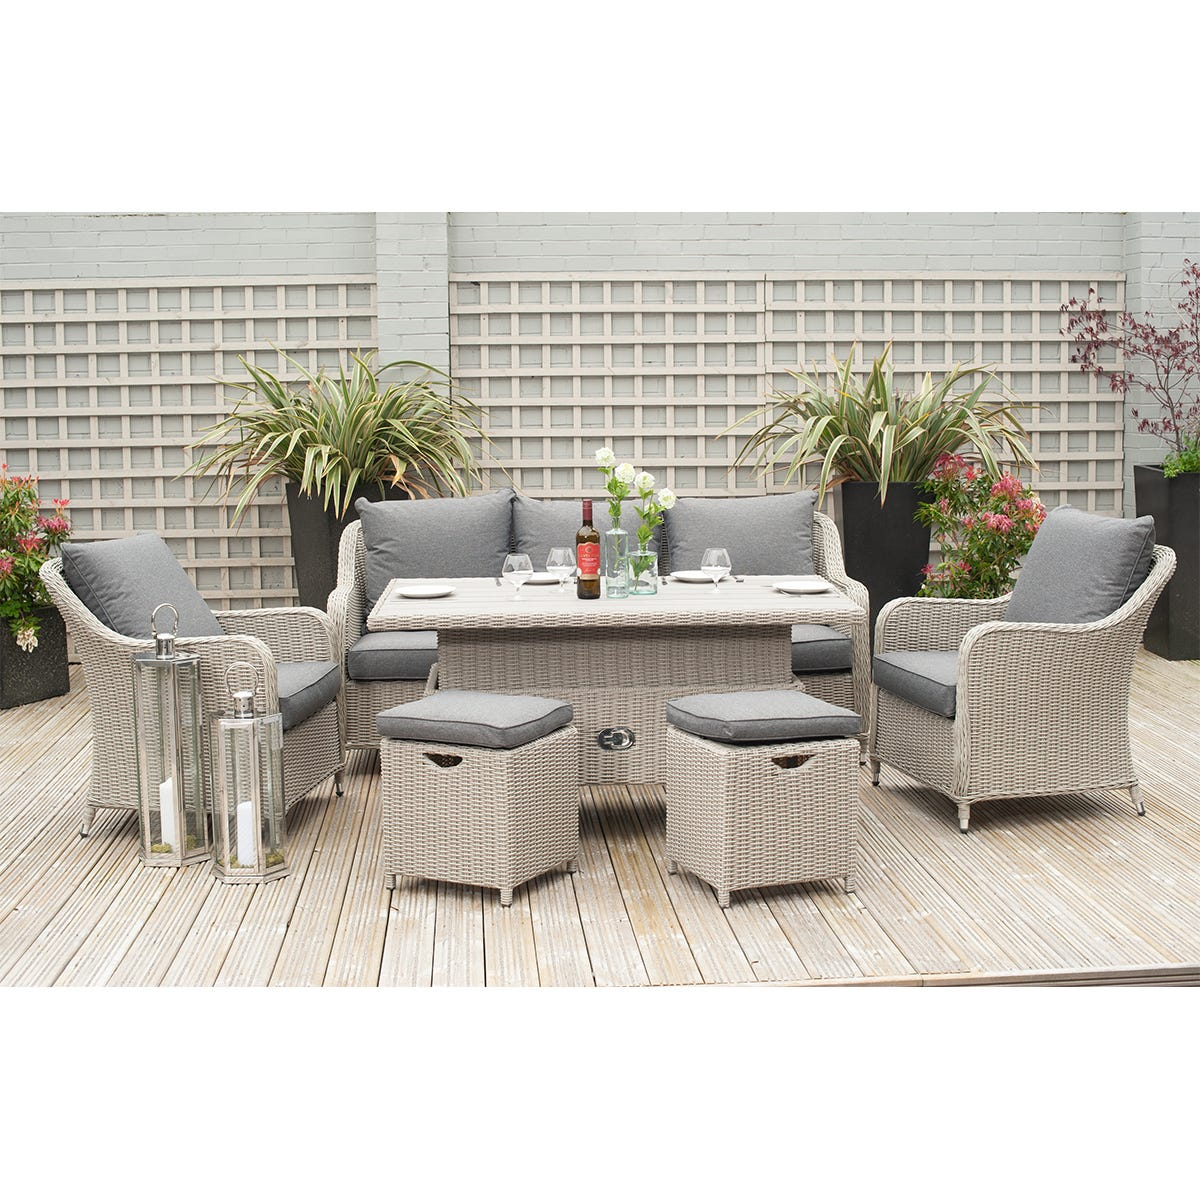 Pacific Lifestyle Antigua Dining Set with Adjustable Table - Stone Grey